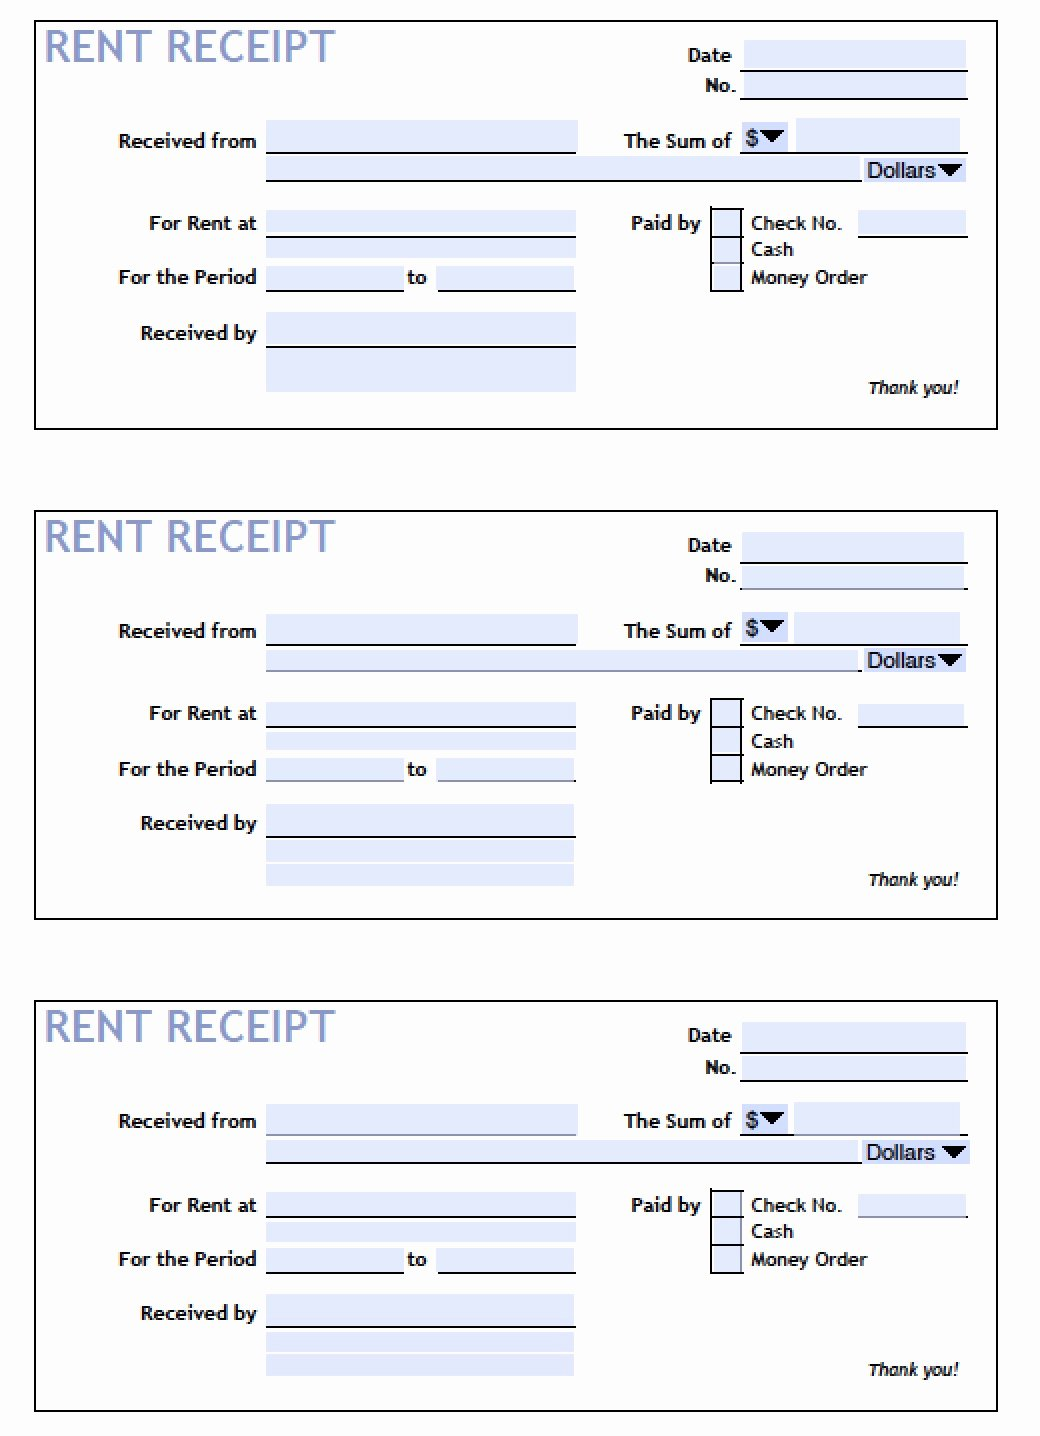 Rental Receipt Template Doc Lovely Download Printable Rent Receipt Templates Pdf